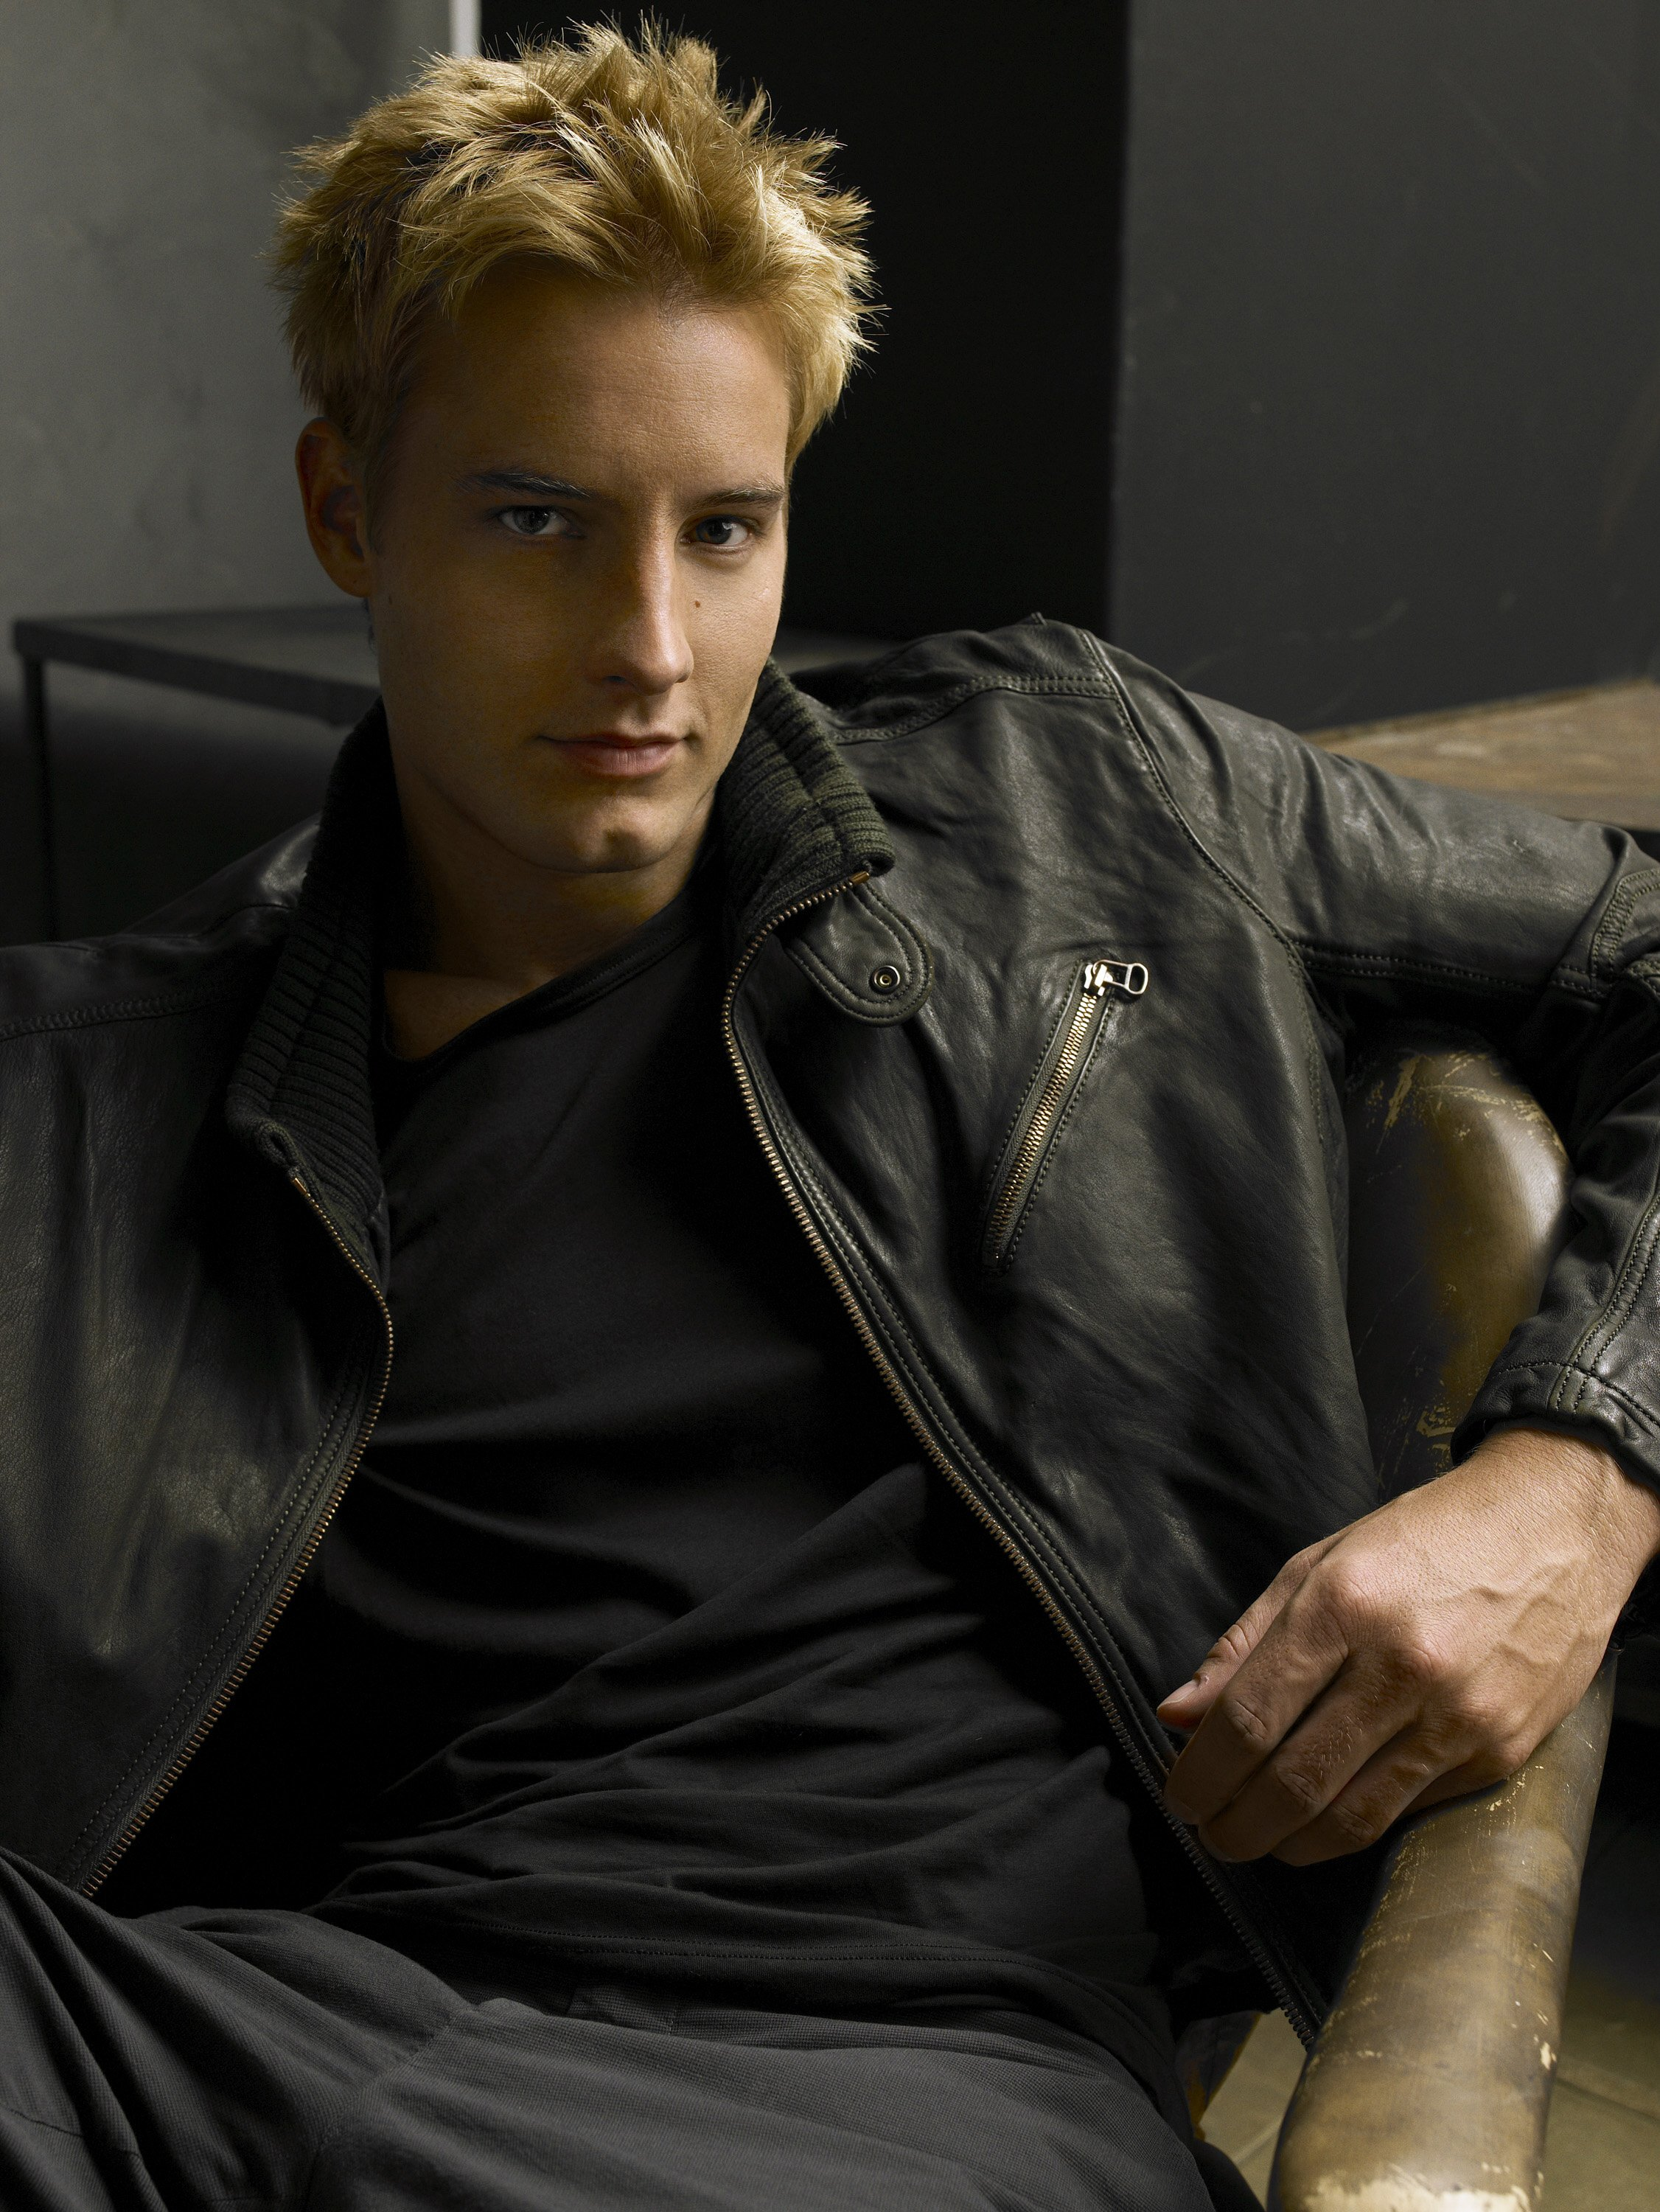 20544_JustinHartley_85_122_576lo.jpg